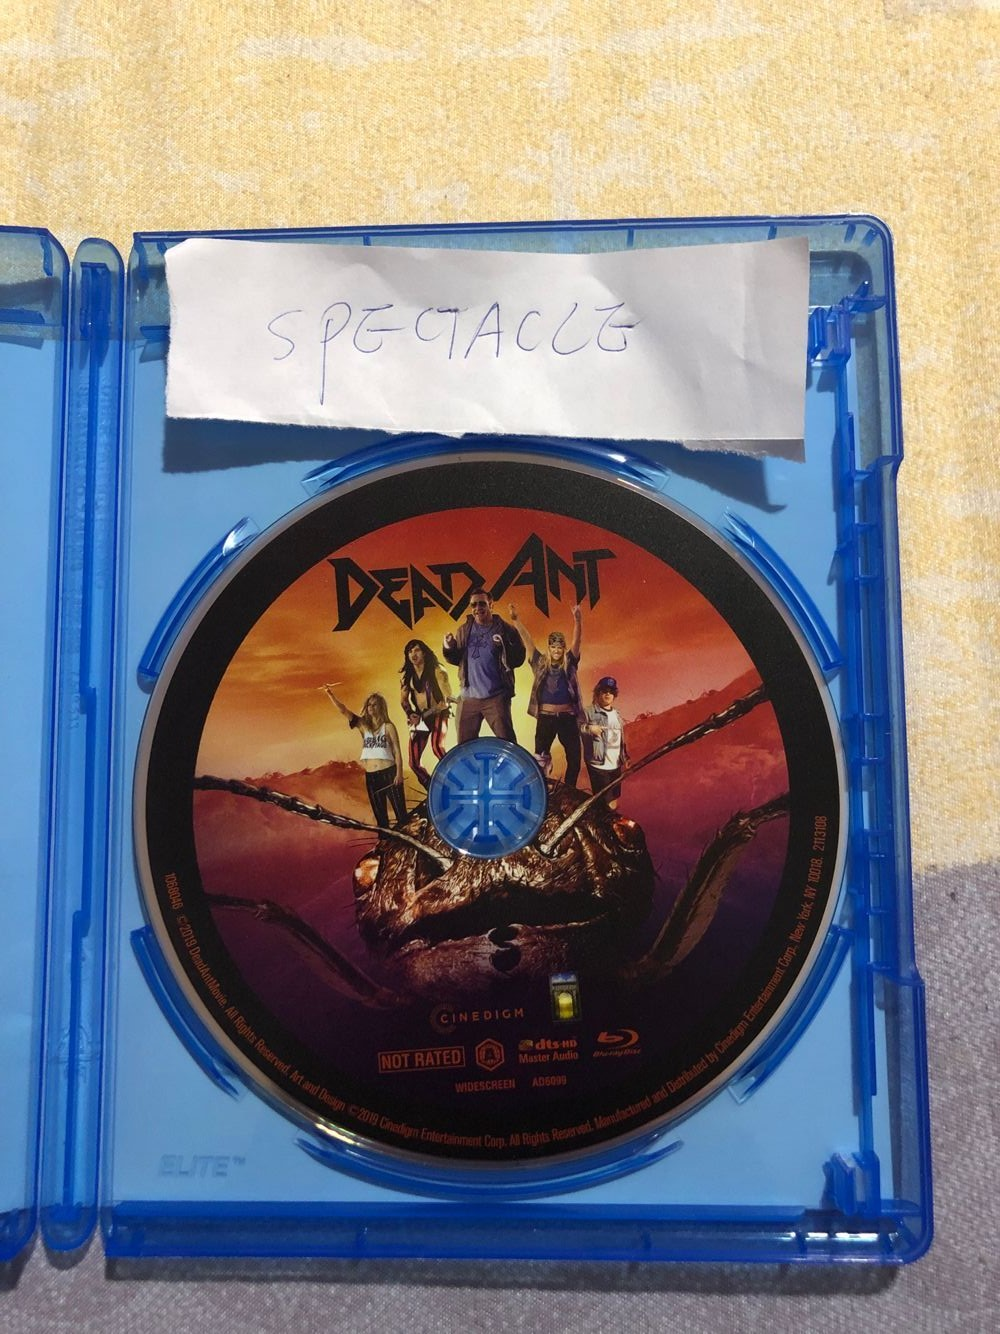 Dead Ant 2017 720p BluRay x264-SPECTACLE